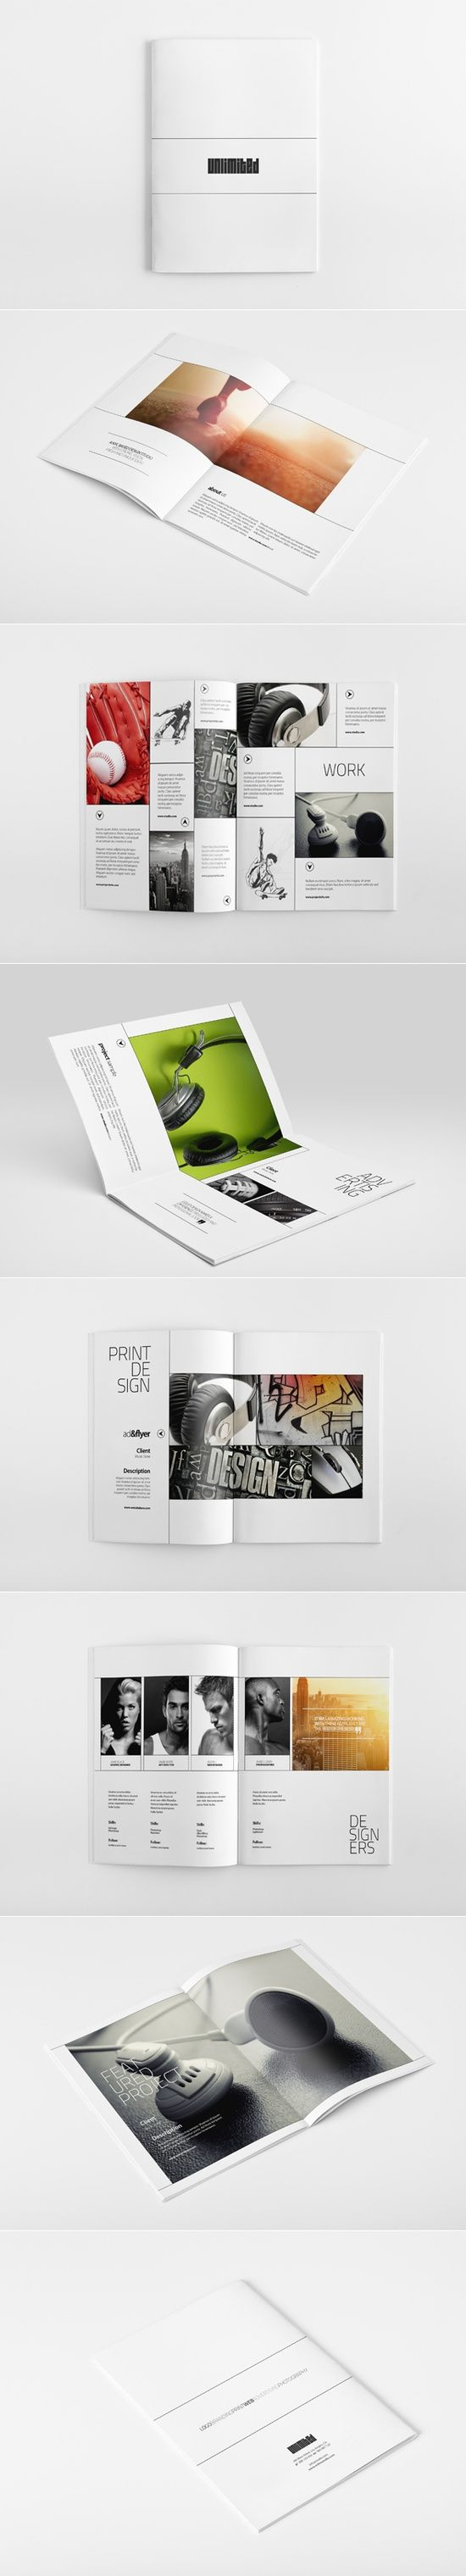 Nice #Webdesign- use of photos is critical in this branding, similar to mine